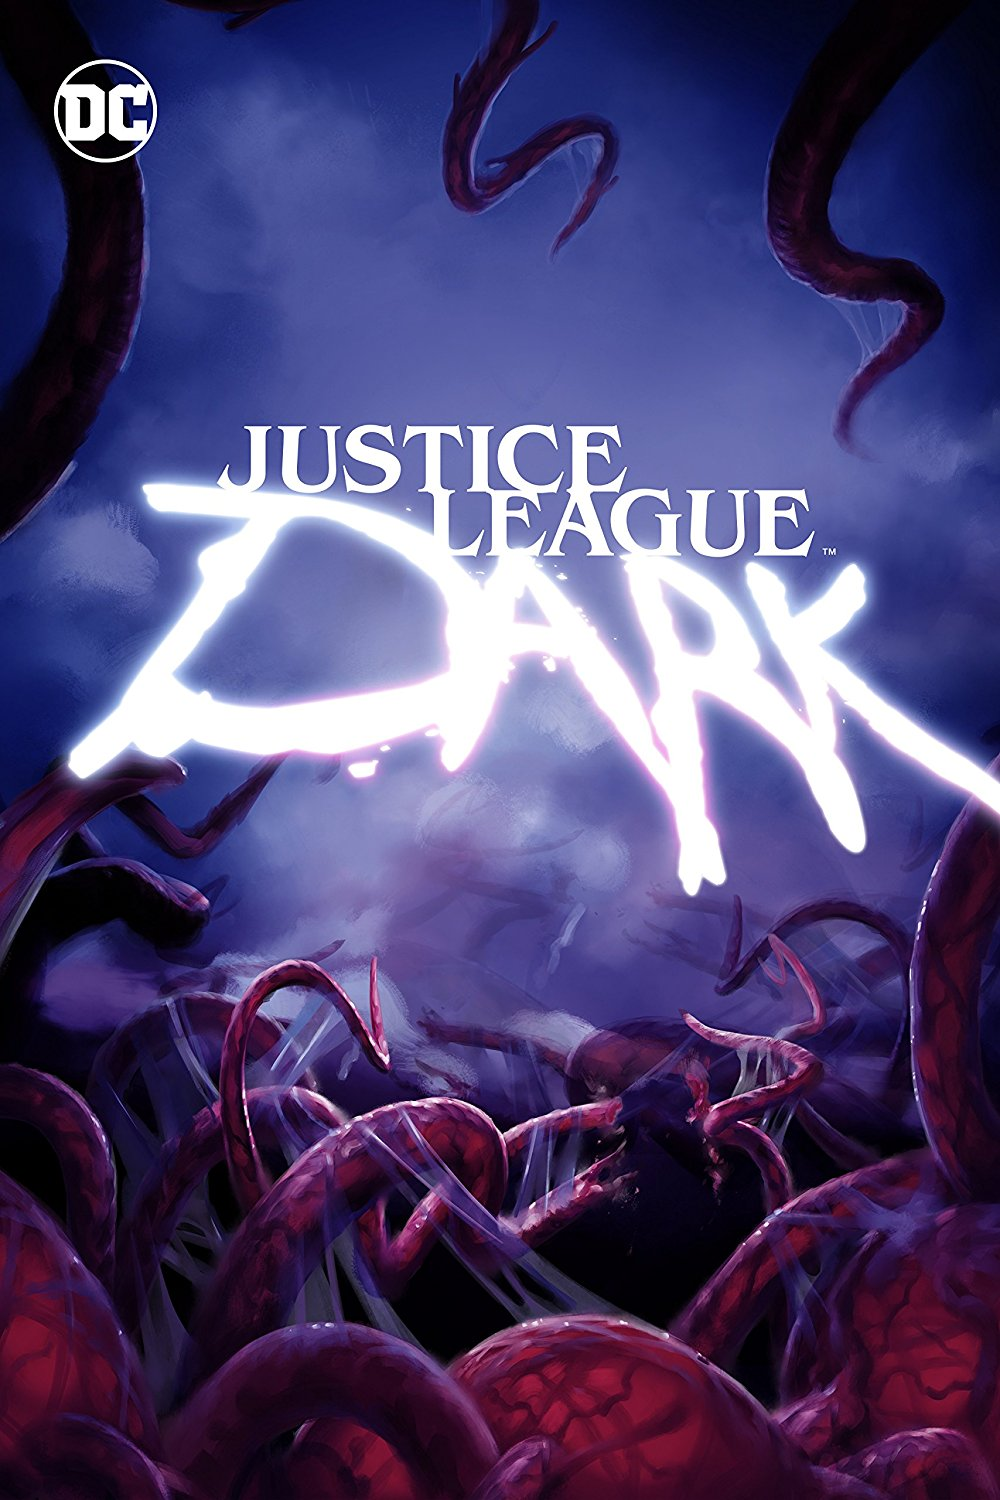 http://img5.downloadha.com/hosein/Animation/January%202017/Justice-League-Dark-2017-cover-large.jpg